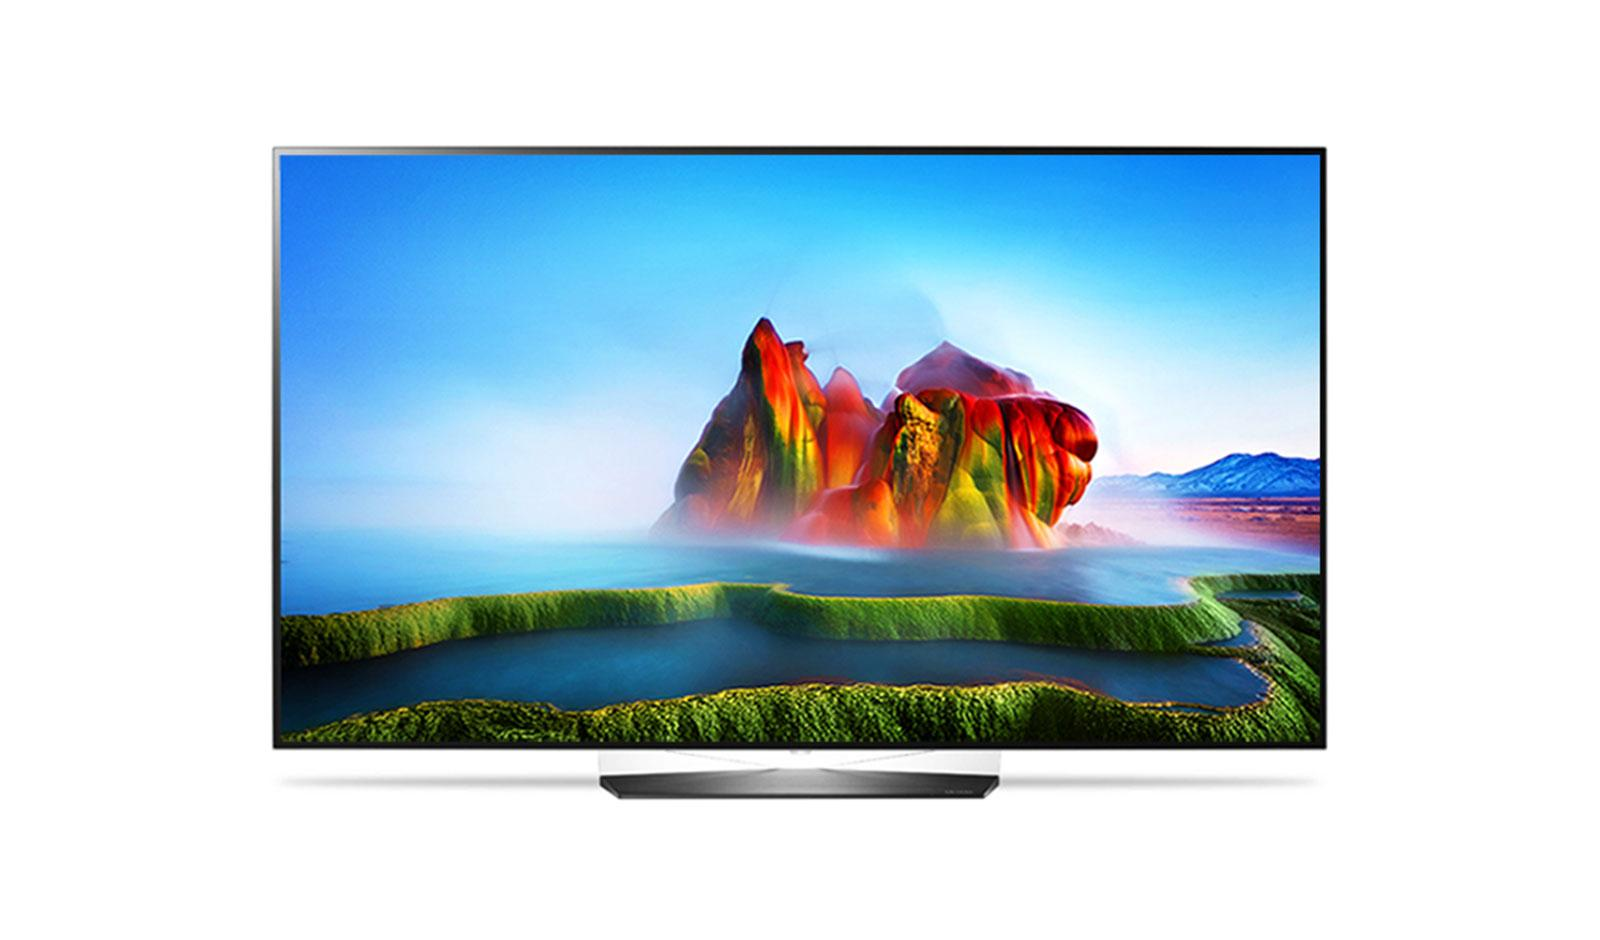 Oled Tv For Sale Oled Television Prices Brands Specs In